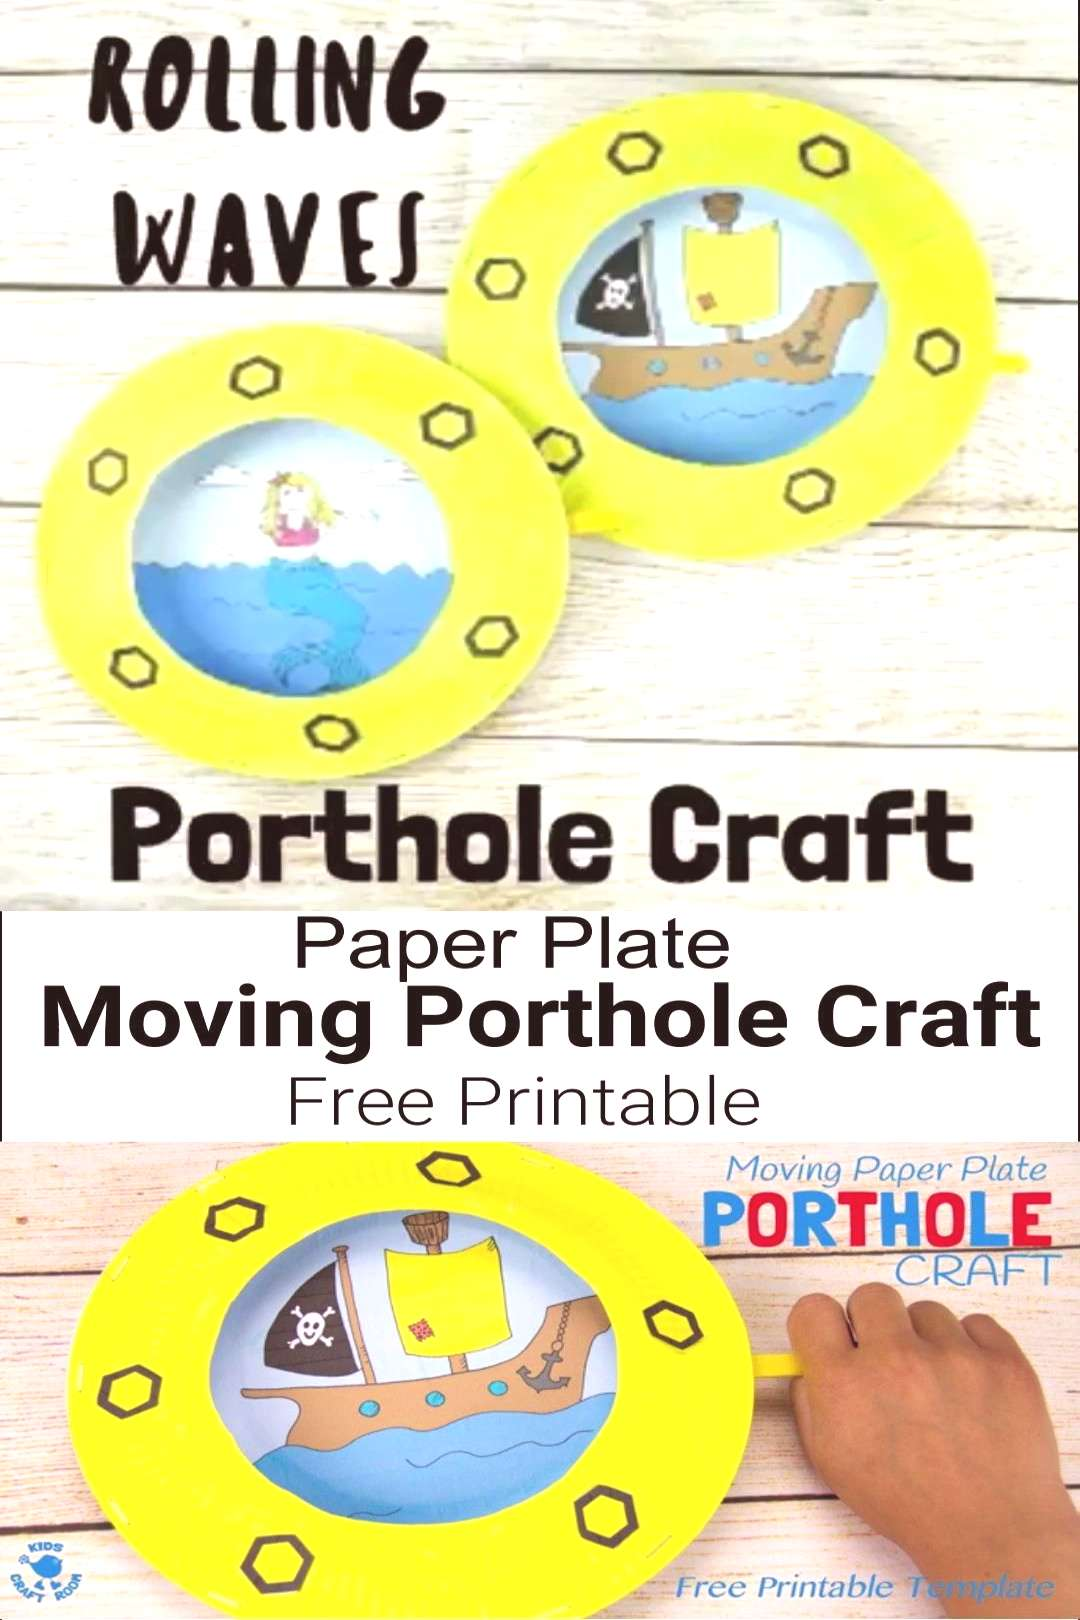 Moving Paper Plate Porthole Craft PAPER PLATE PORTHOLE CRAFT - a fantastic ocean craft for kids tha